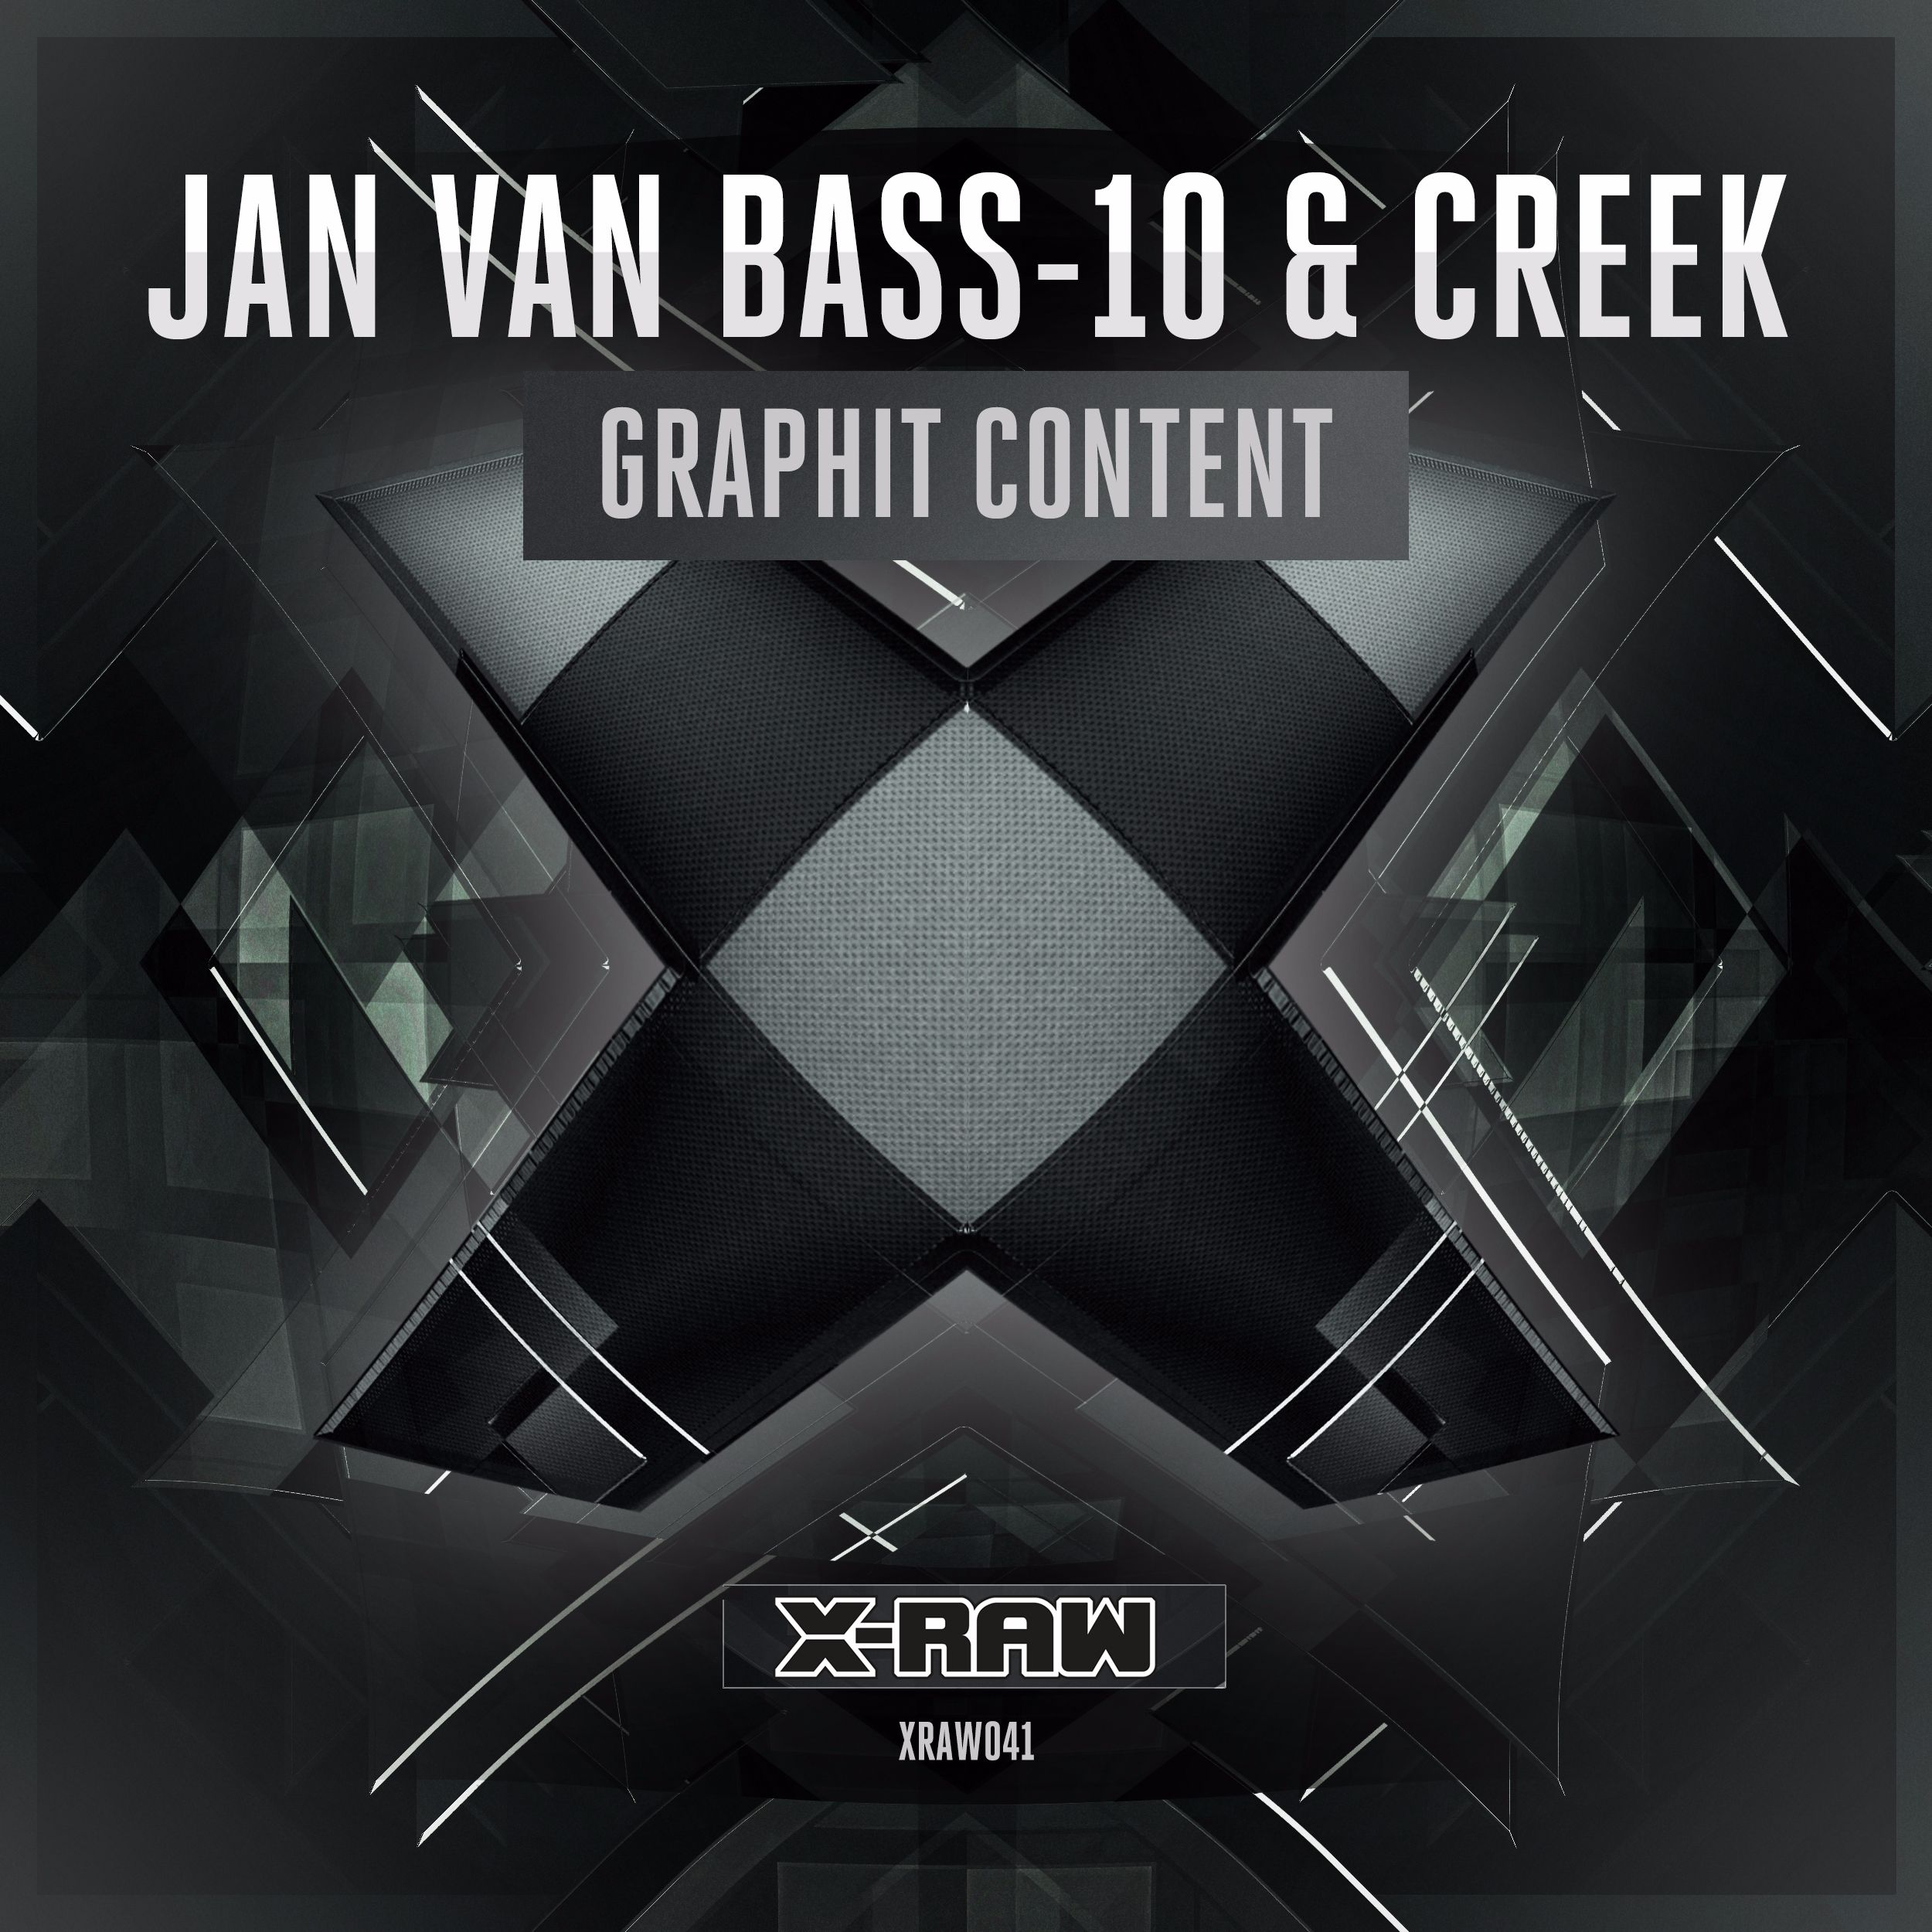 Jan Van Bass-10 & Creek - Graphit Content [X-BONE RAW] XRAW041